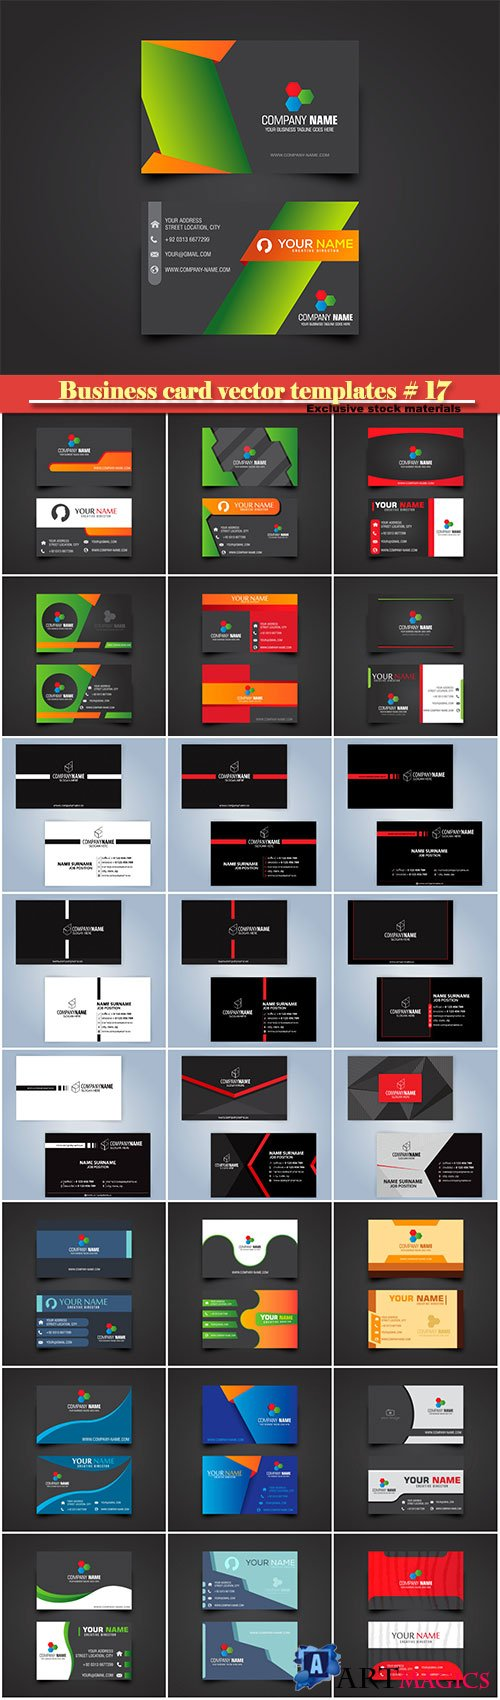 Business card vector templates # 17